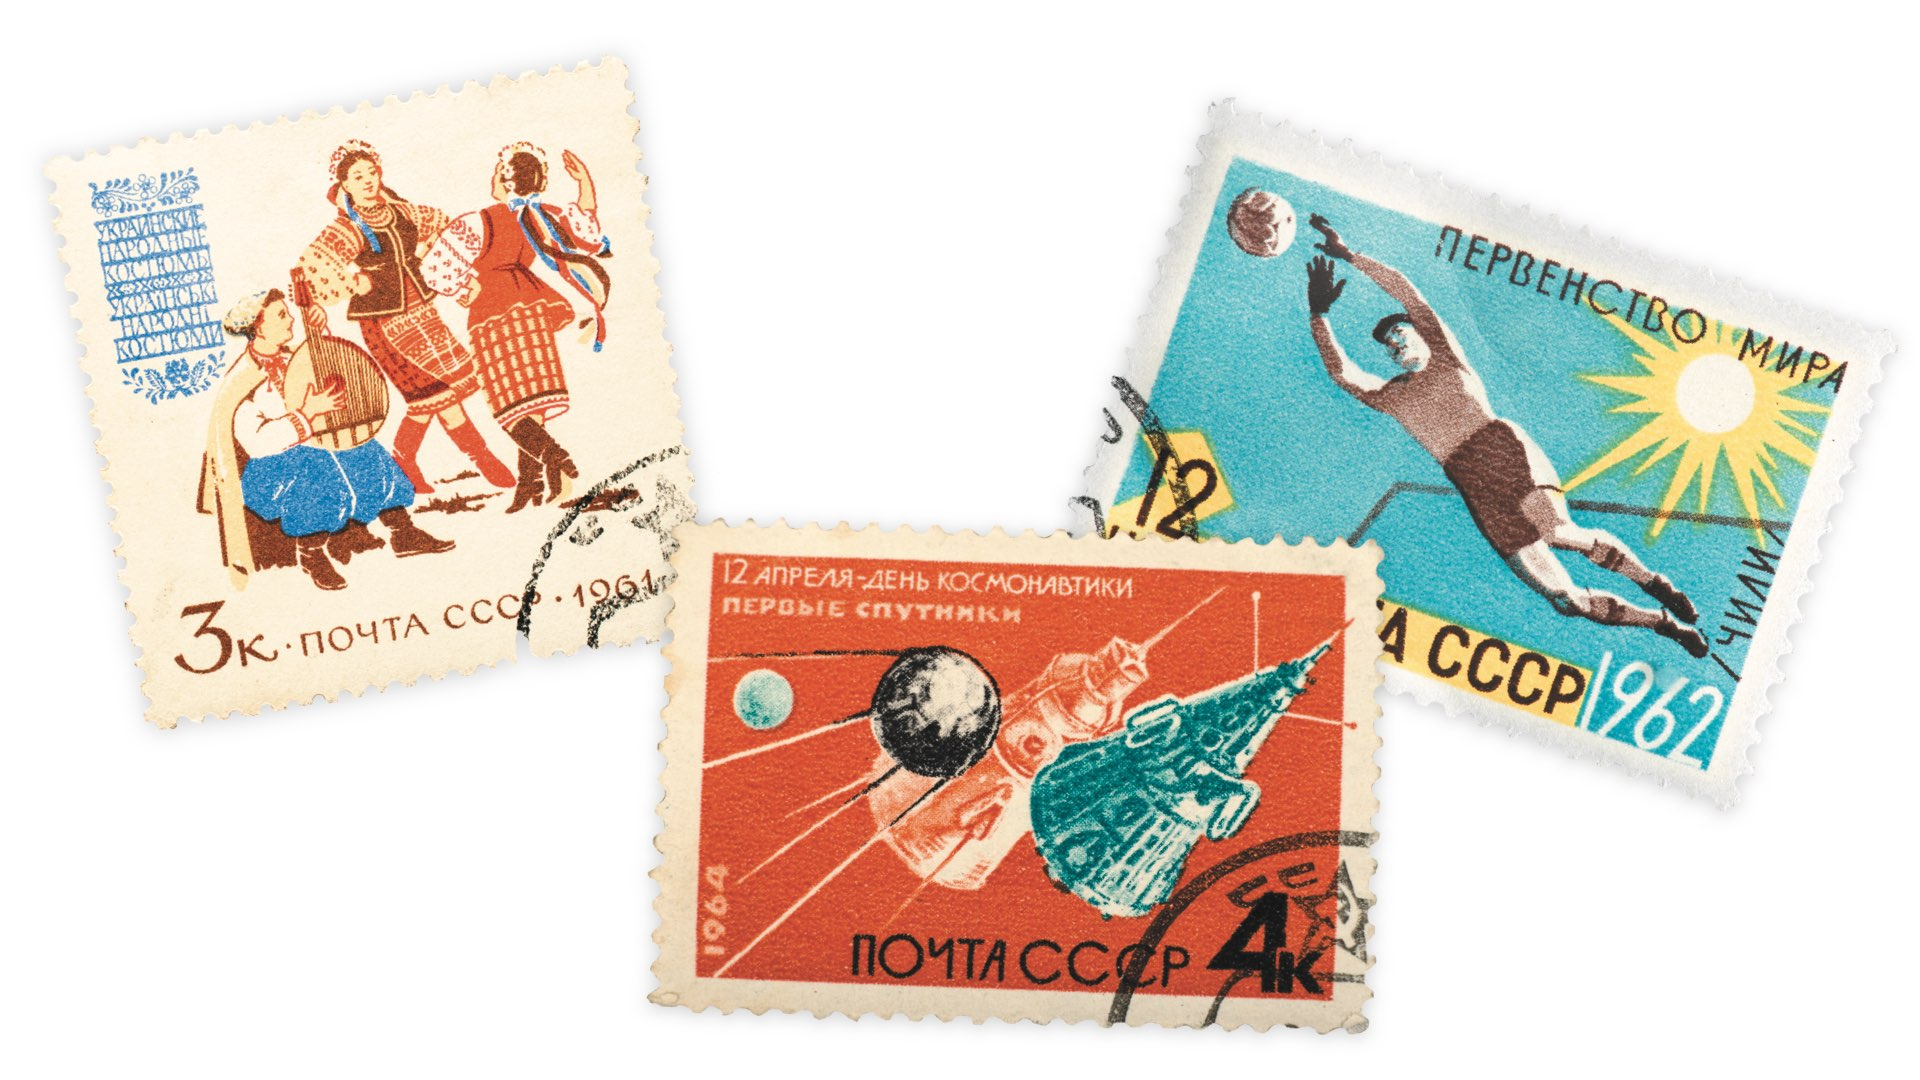 Three brightly colored vintage Russian stamps with Russian text depicting folklore, aerospace exploration and soccer